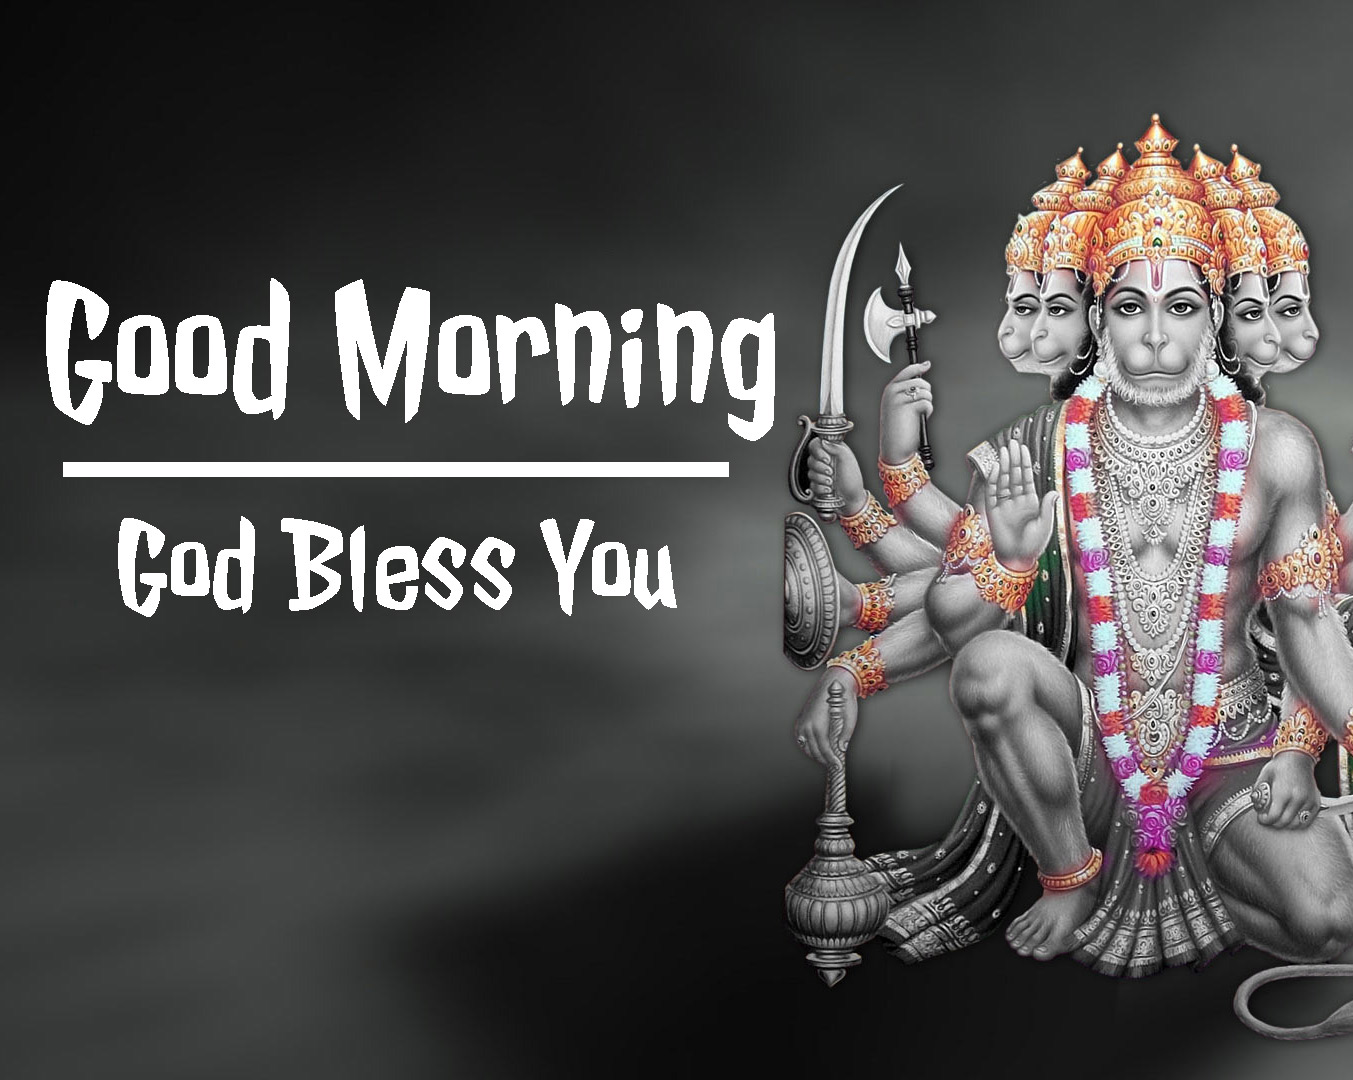 god bless good morning images With Hanuman Ji